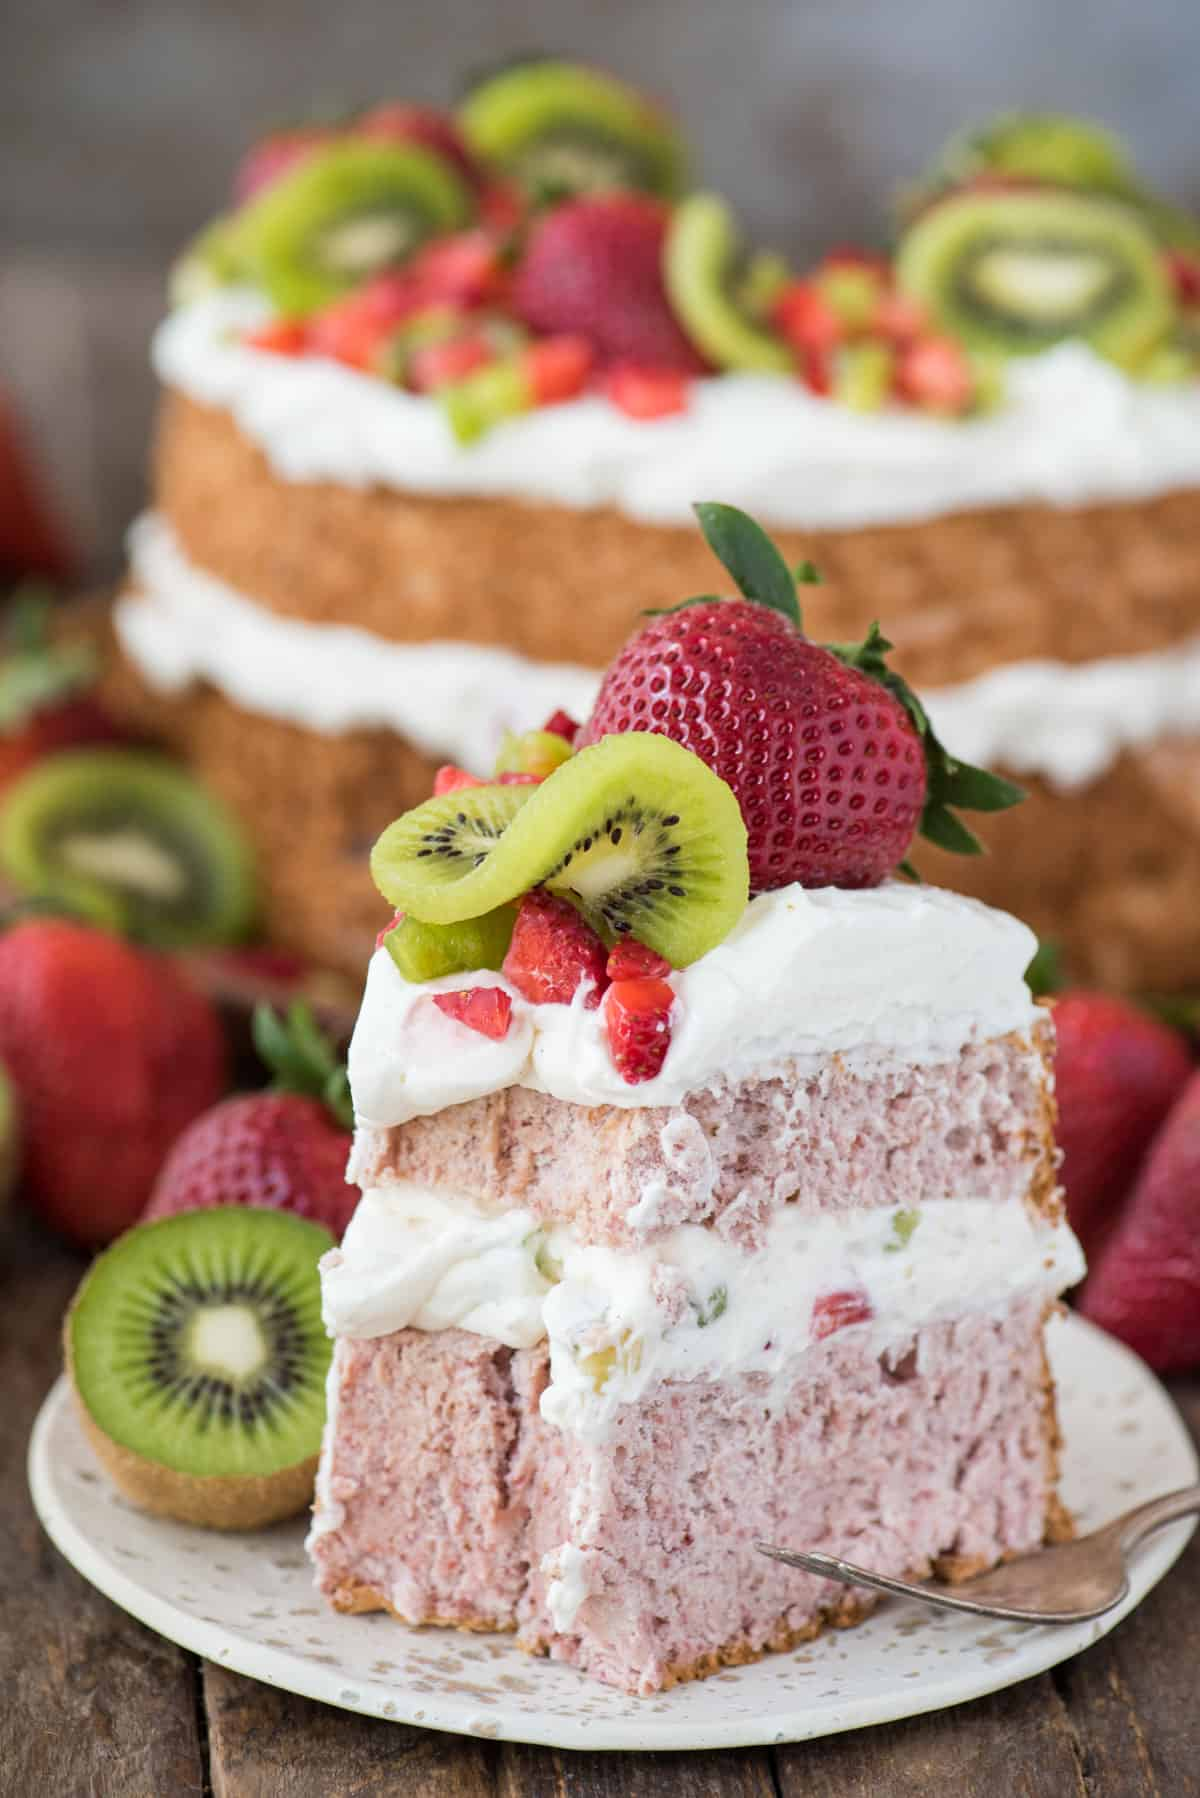 slice of strawberry angel for cake with whipped cream, strawberries and kiwi on white plate